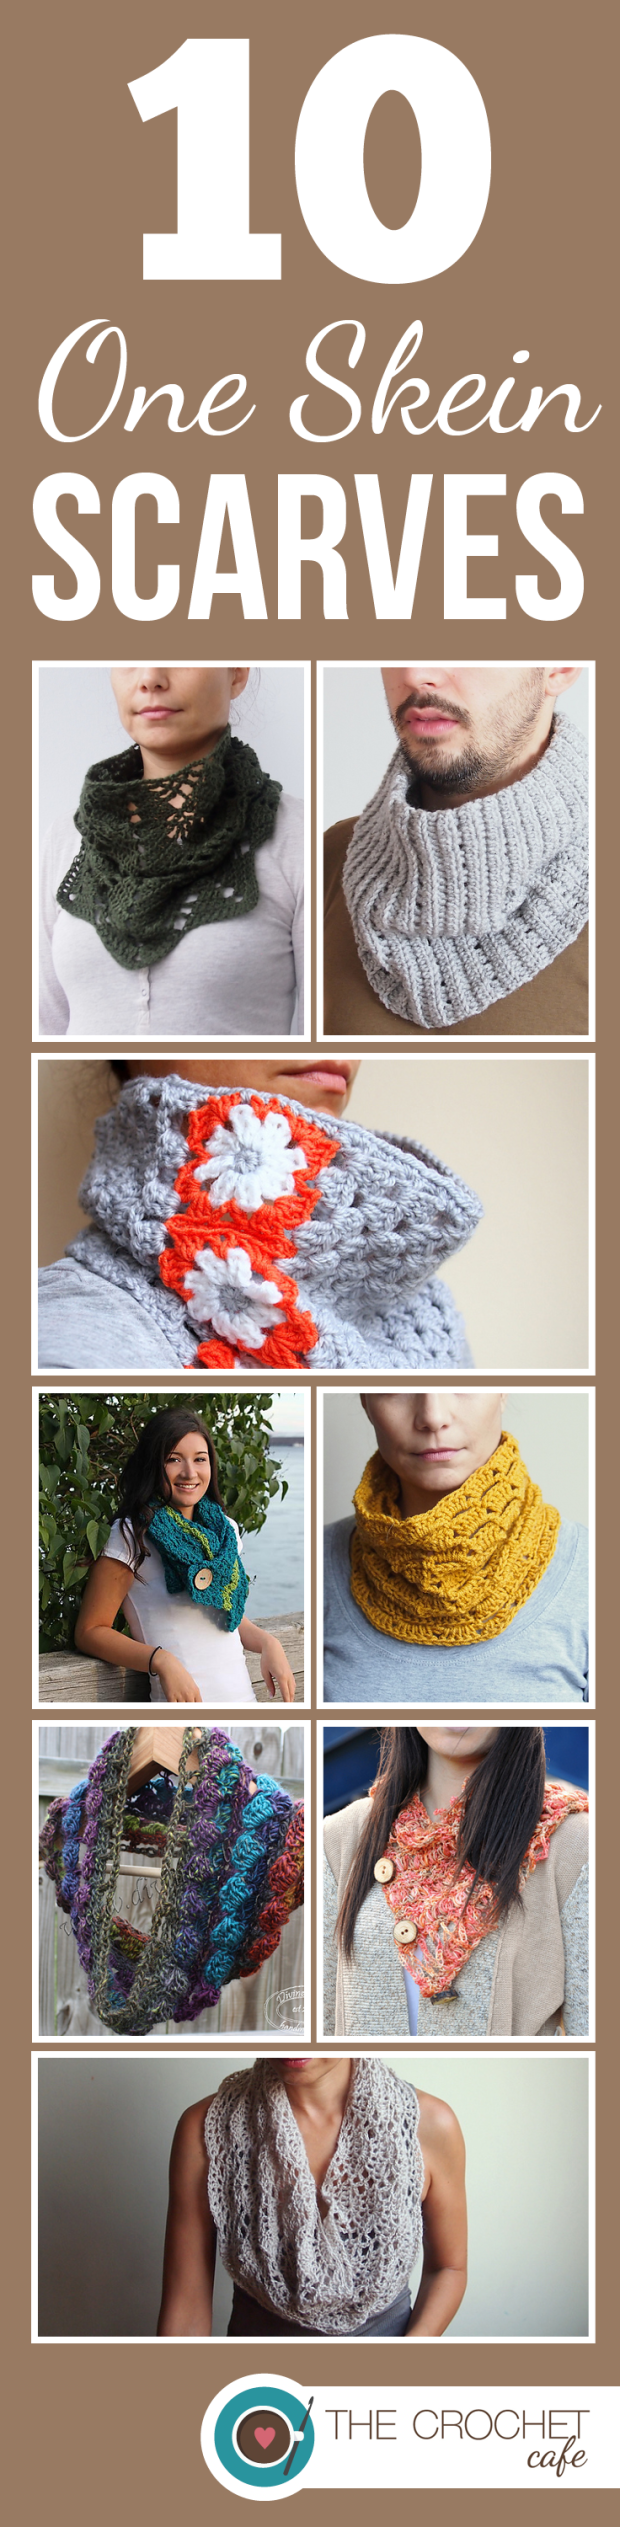 10 One Skein Crochet Scarf Patterns - I love a quick project ...